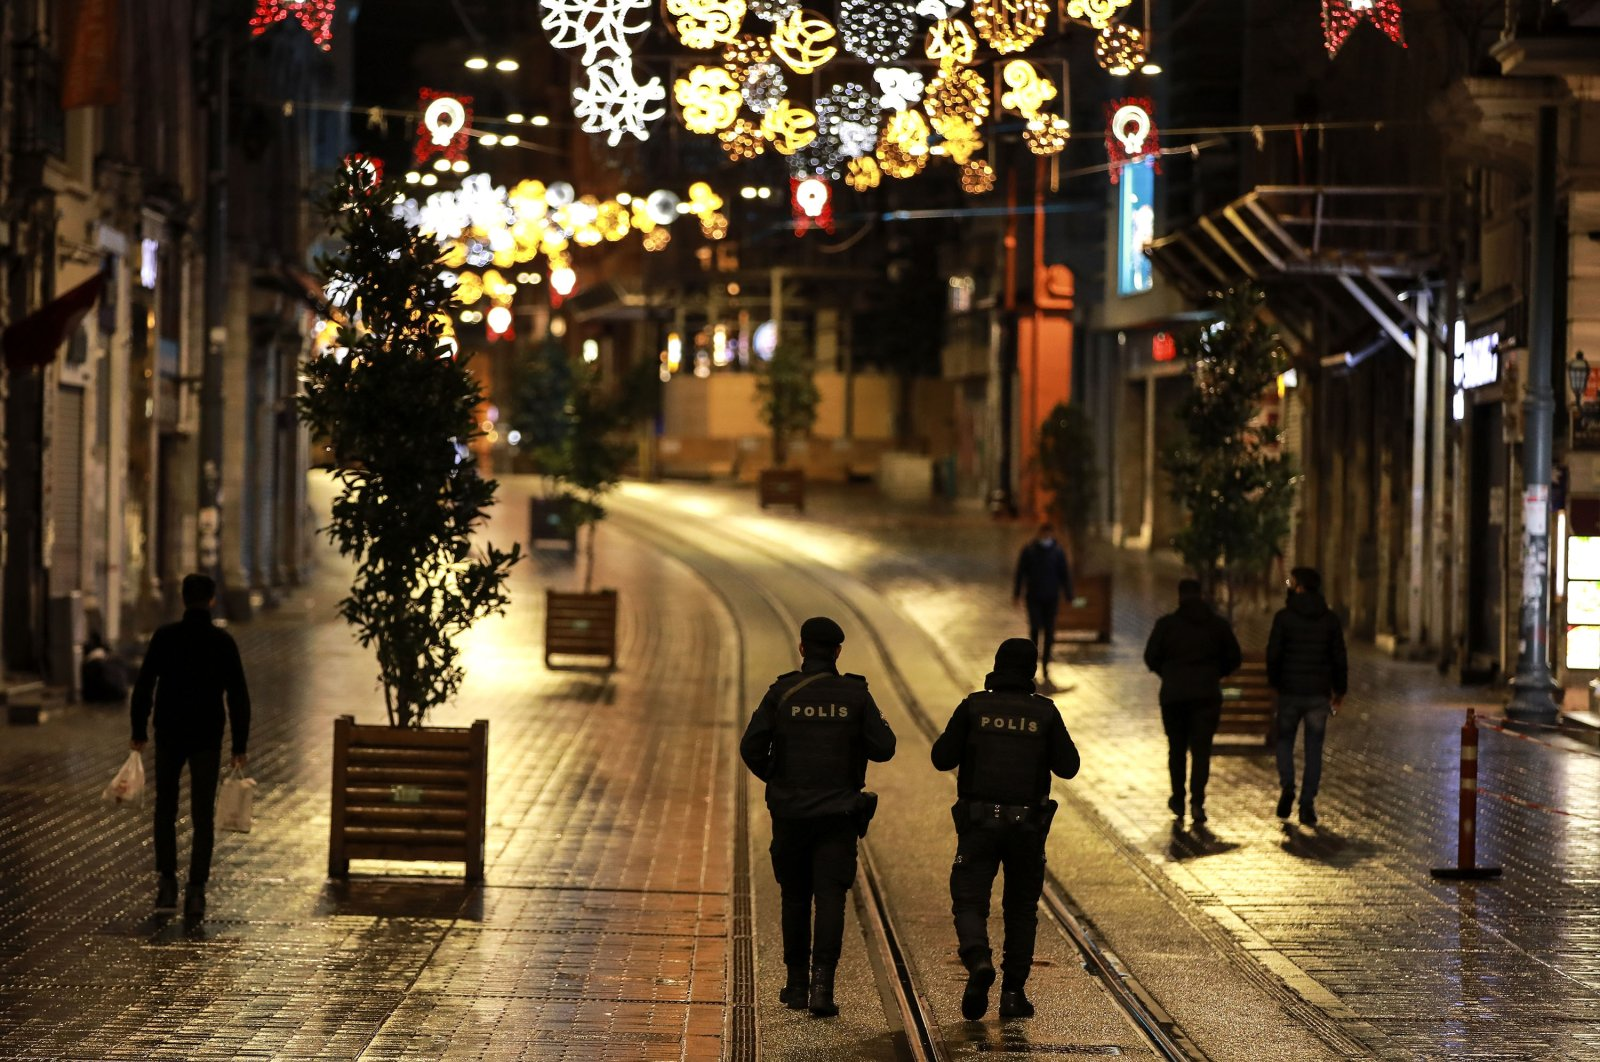 Police officers patrol Istiklal street, the main shopping street in Istanbul, minutes into the lockdown, part of the new measures to try to curb the spread of the coronavirus on Nov. 21, 2020. (AP Photo)